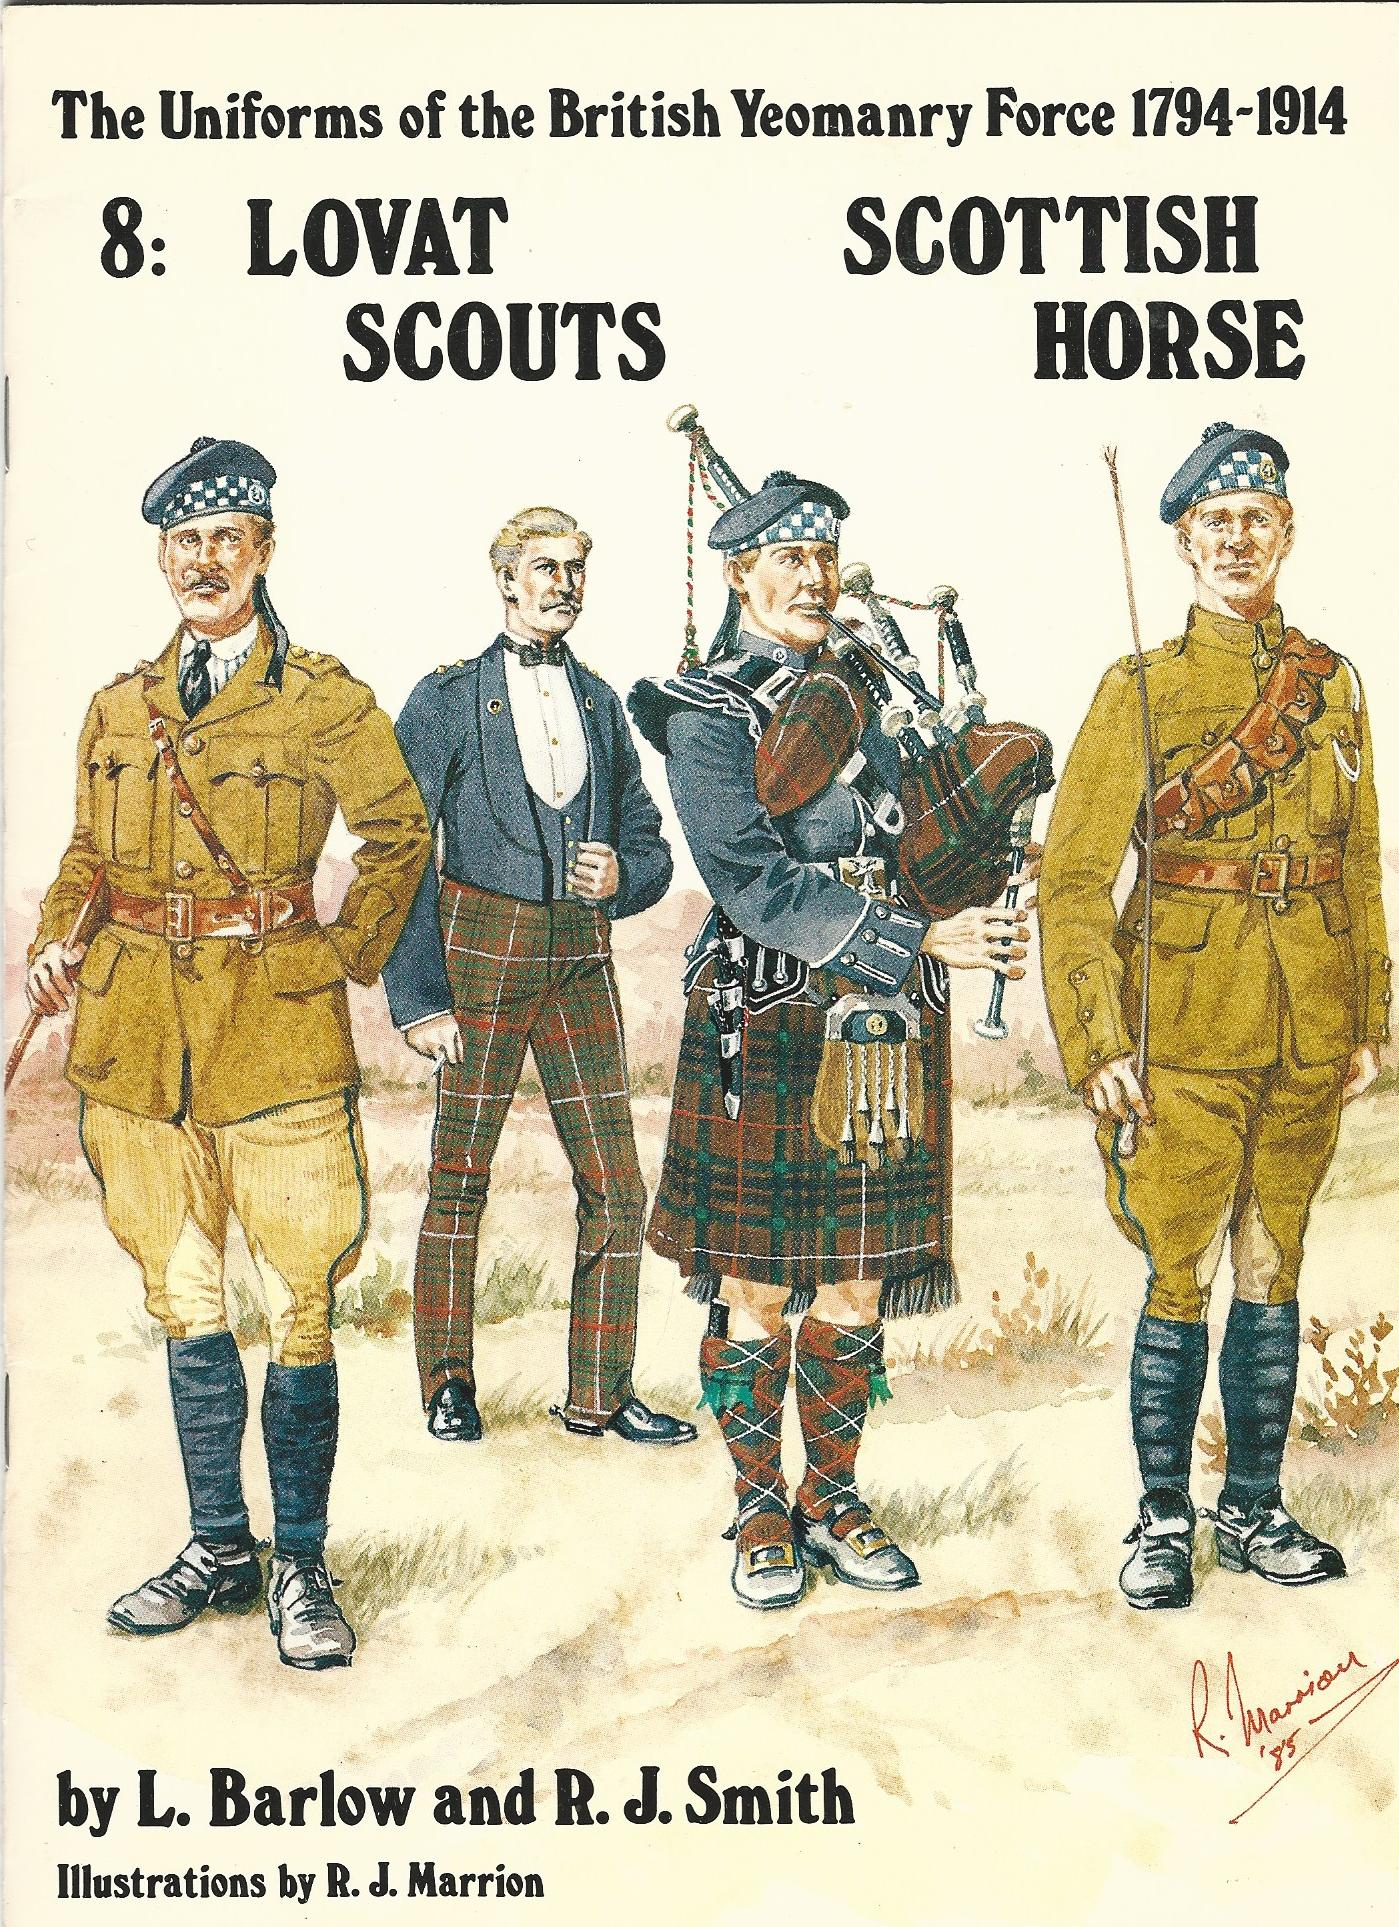 Image for The Uniforms of the British Yeomanry Force 1794-1914 No.8: Lovat Scouts, Scottish Horse